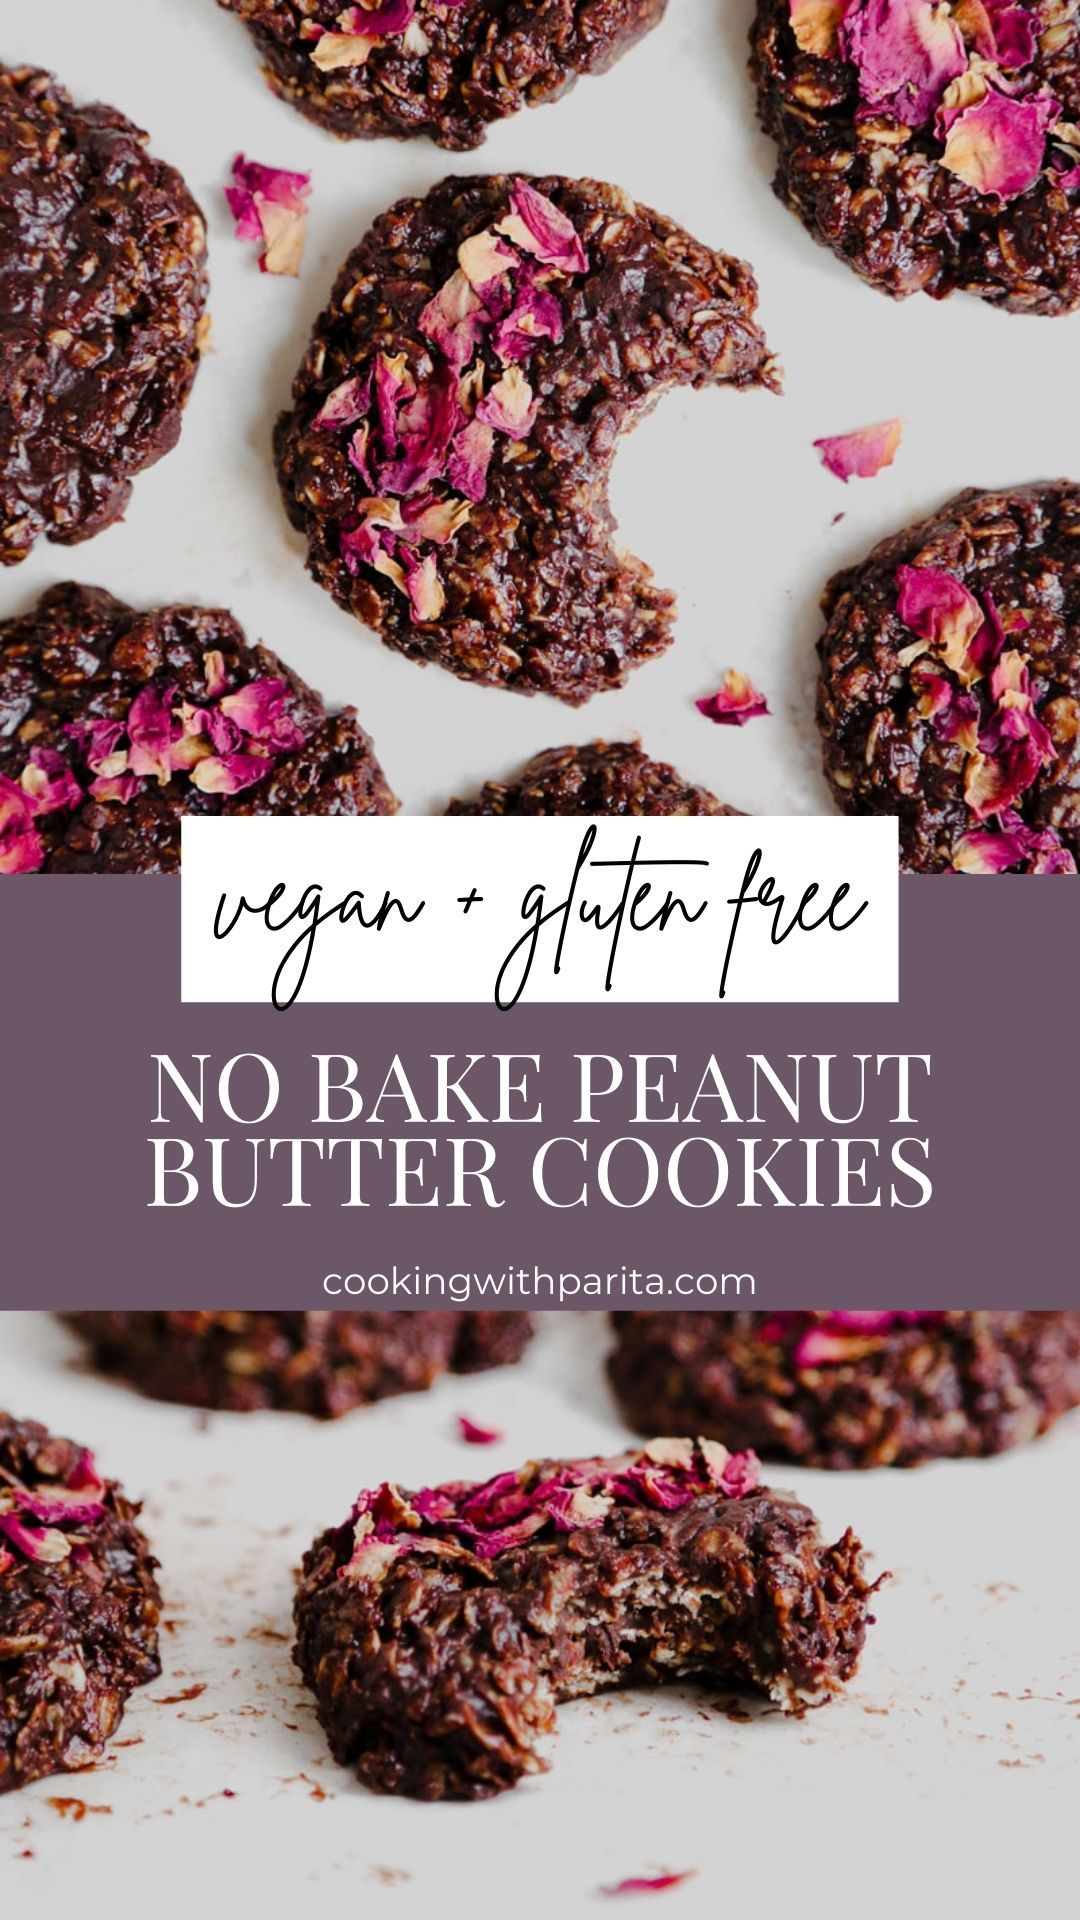 Chocolate Peanut Butter No Bake Cookies  - Vegan V